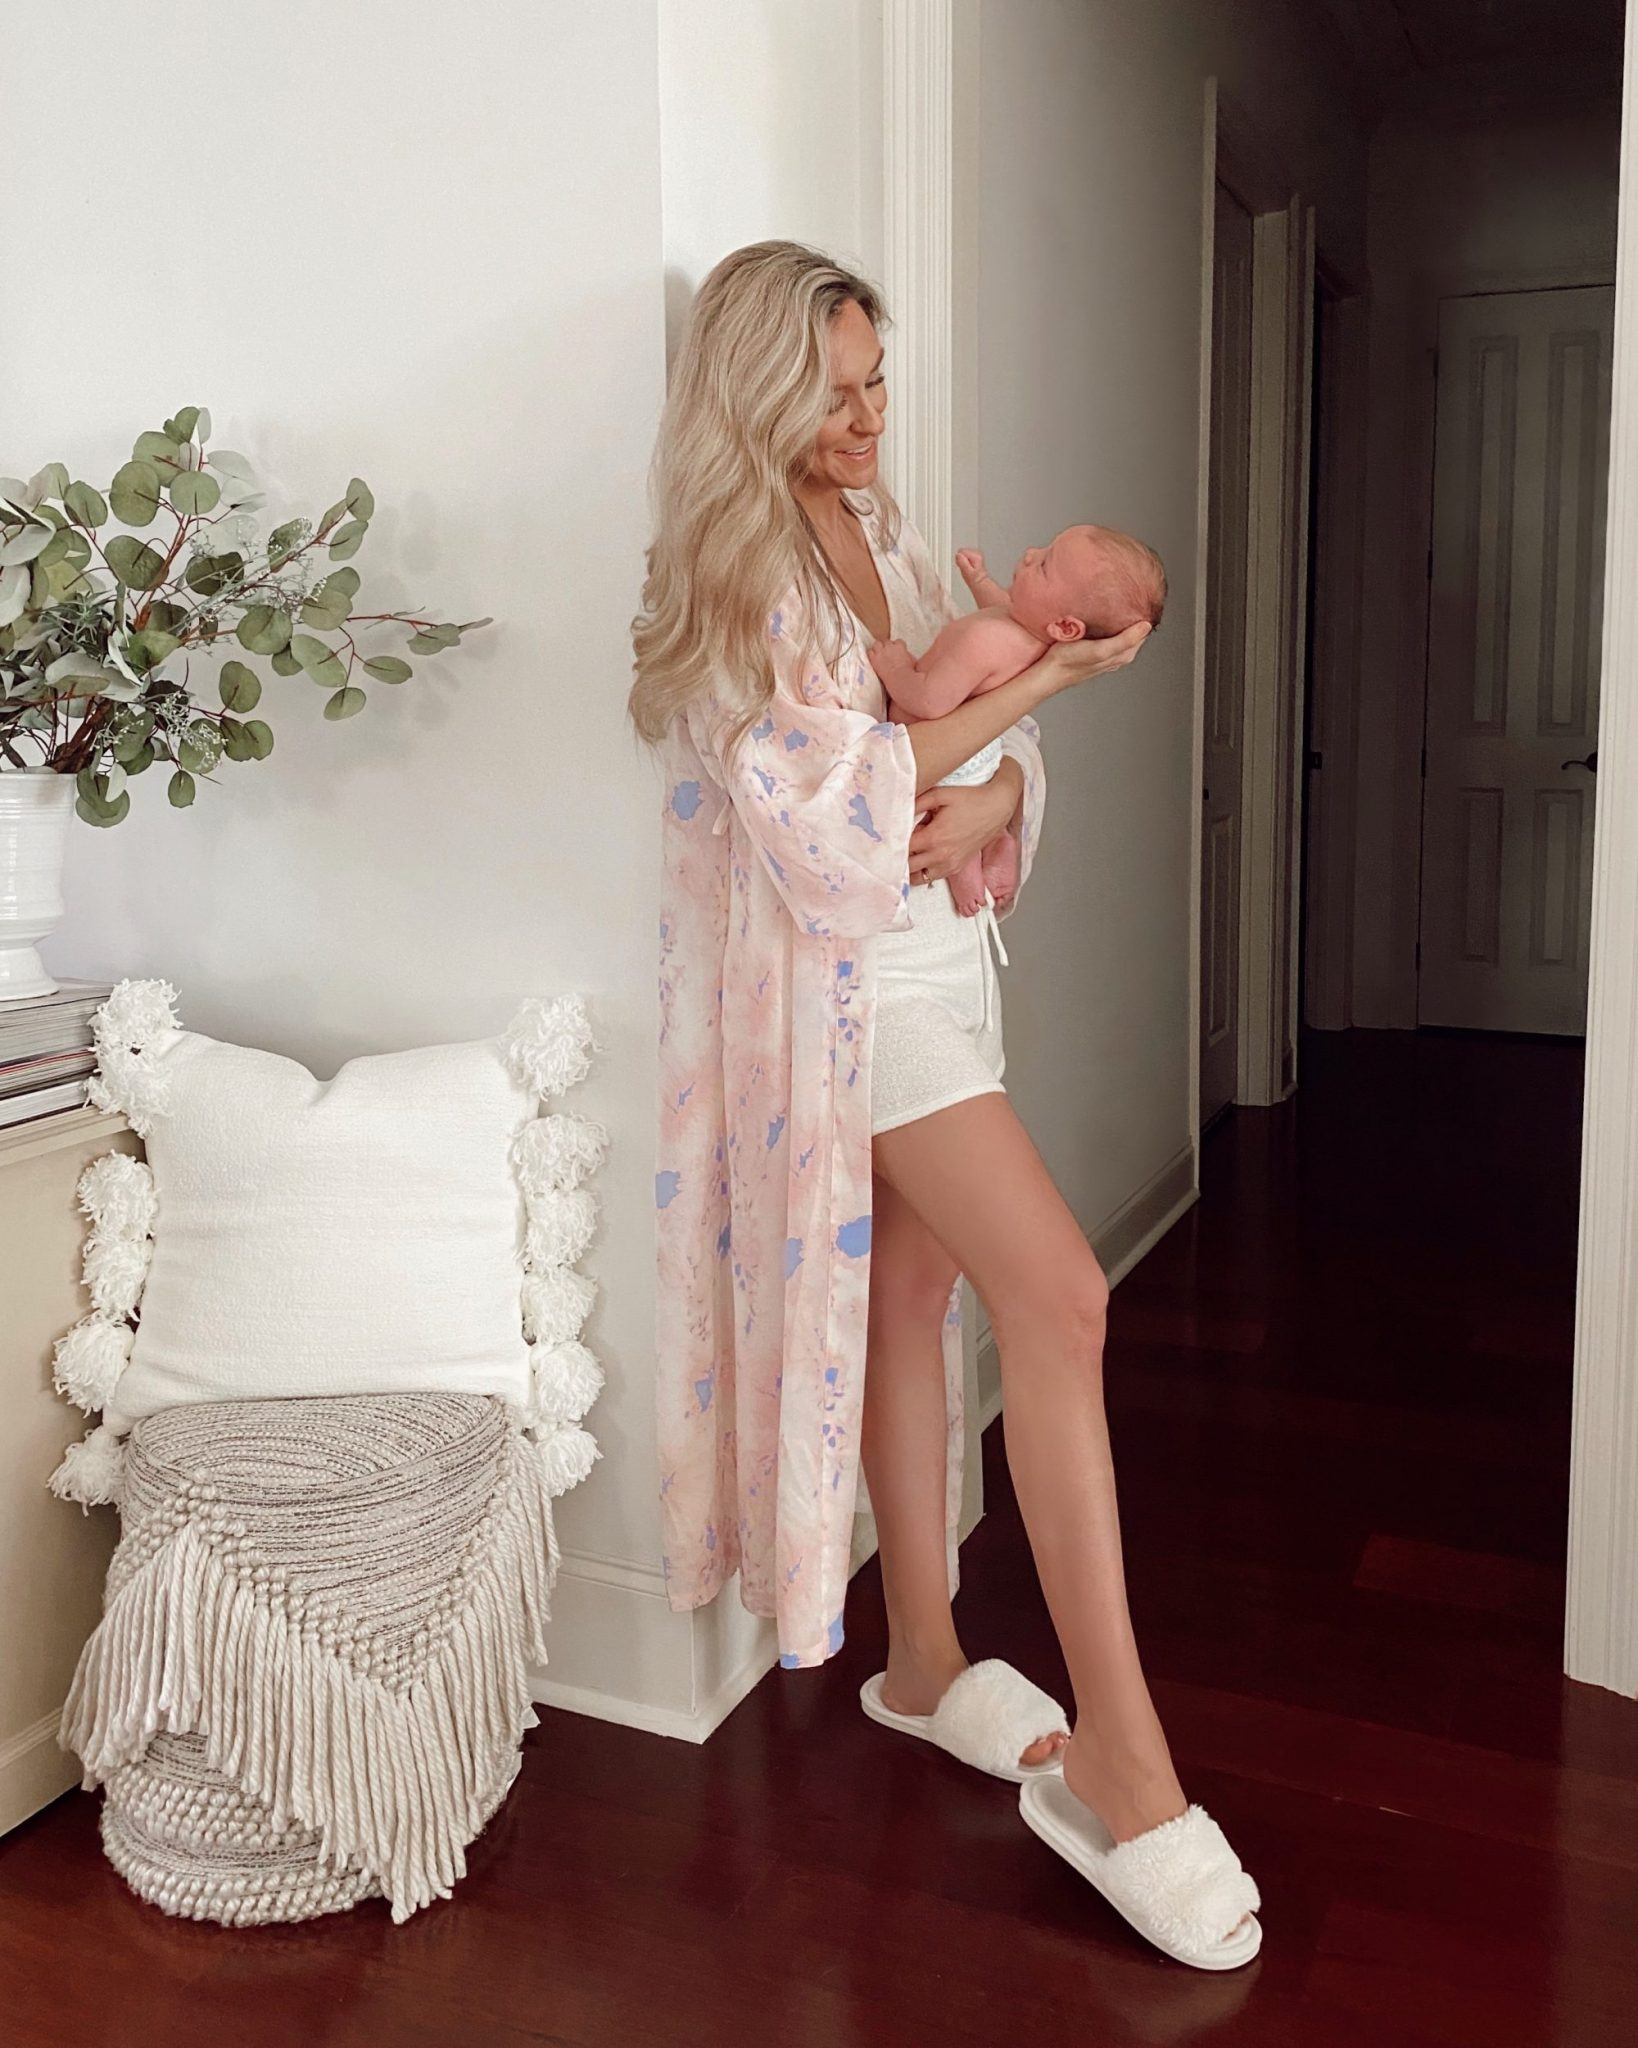 Postpartum Pampering to help you start feeling like yourself again